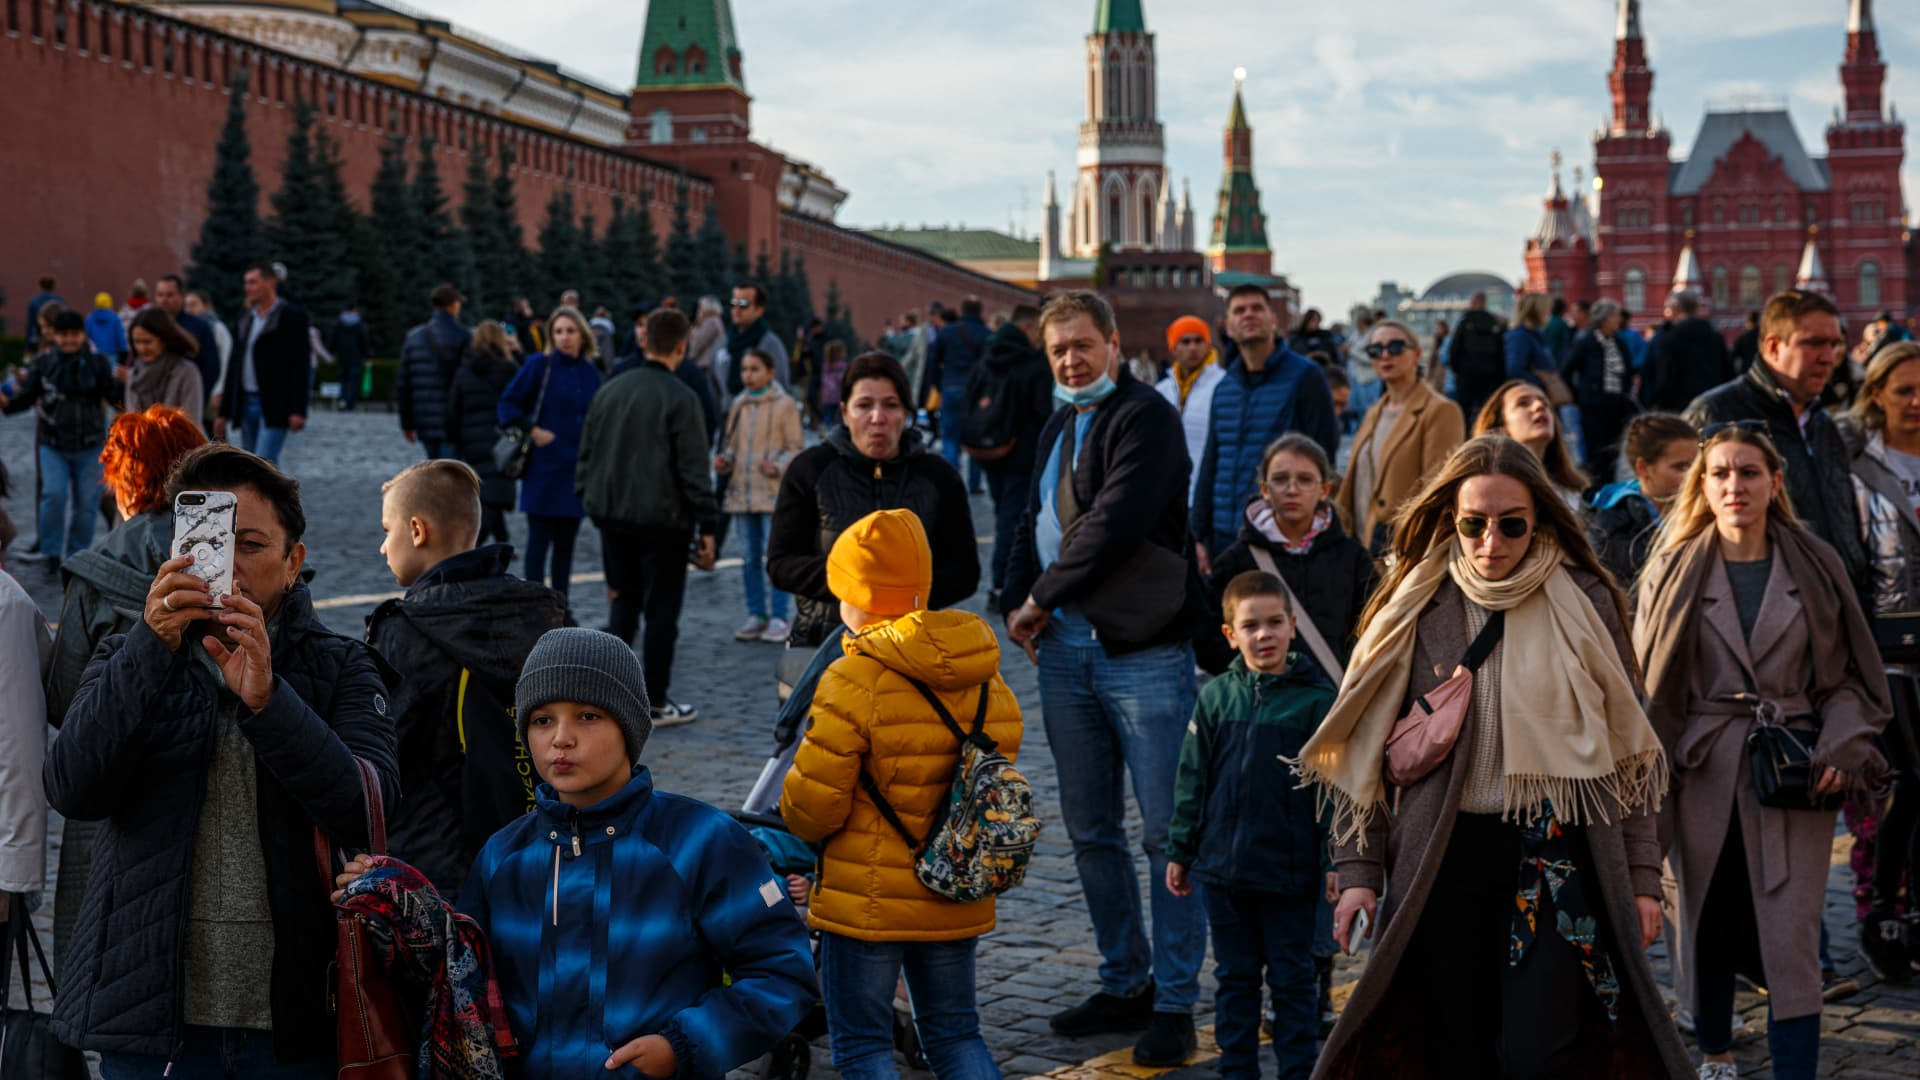 People walk through the Red Square in a sunny autumn day in Moscow on October 9, 2021.